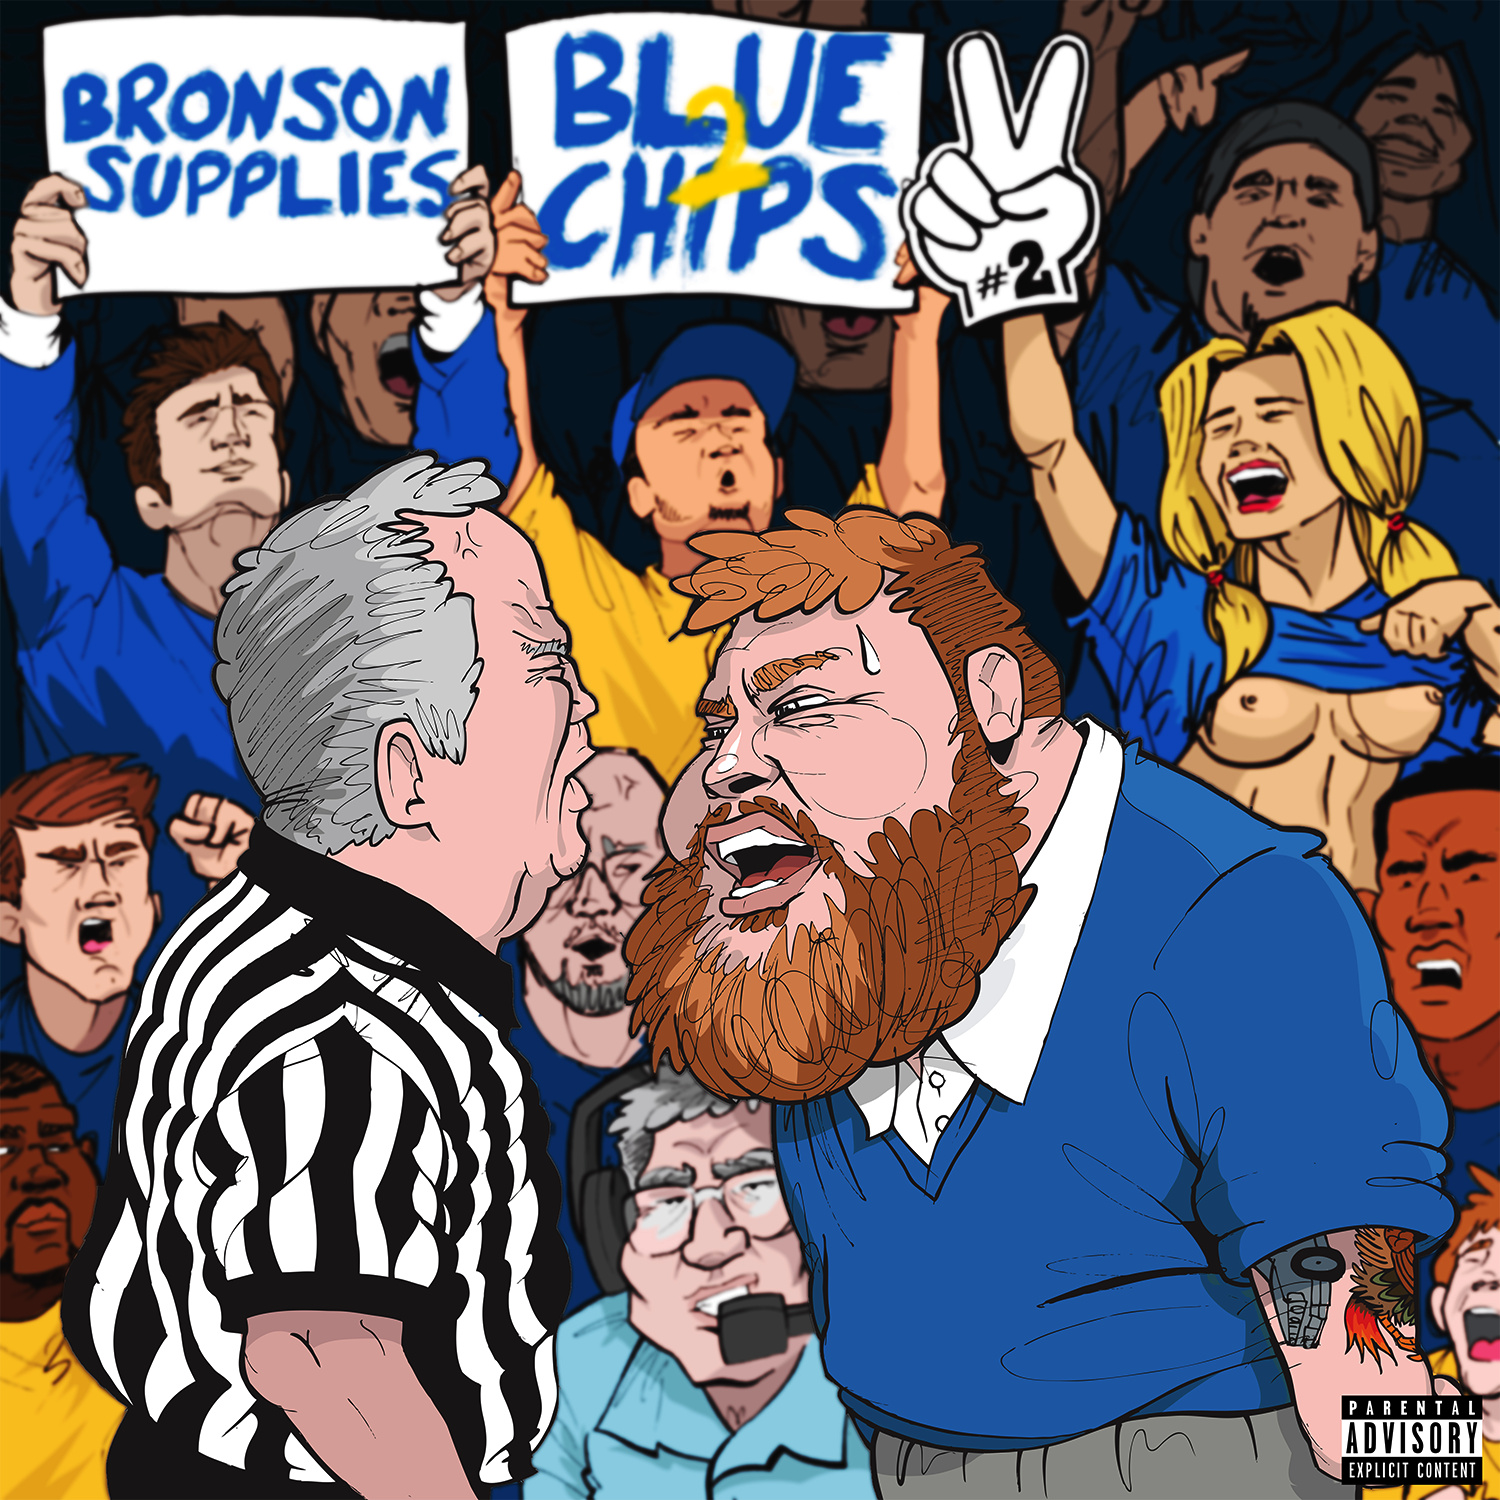 Mixtape Of The Week: Action Bronson &#038; Party Supplies <em>Blue Chips 2</em>